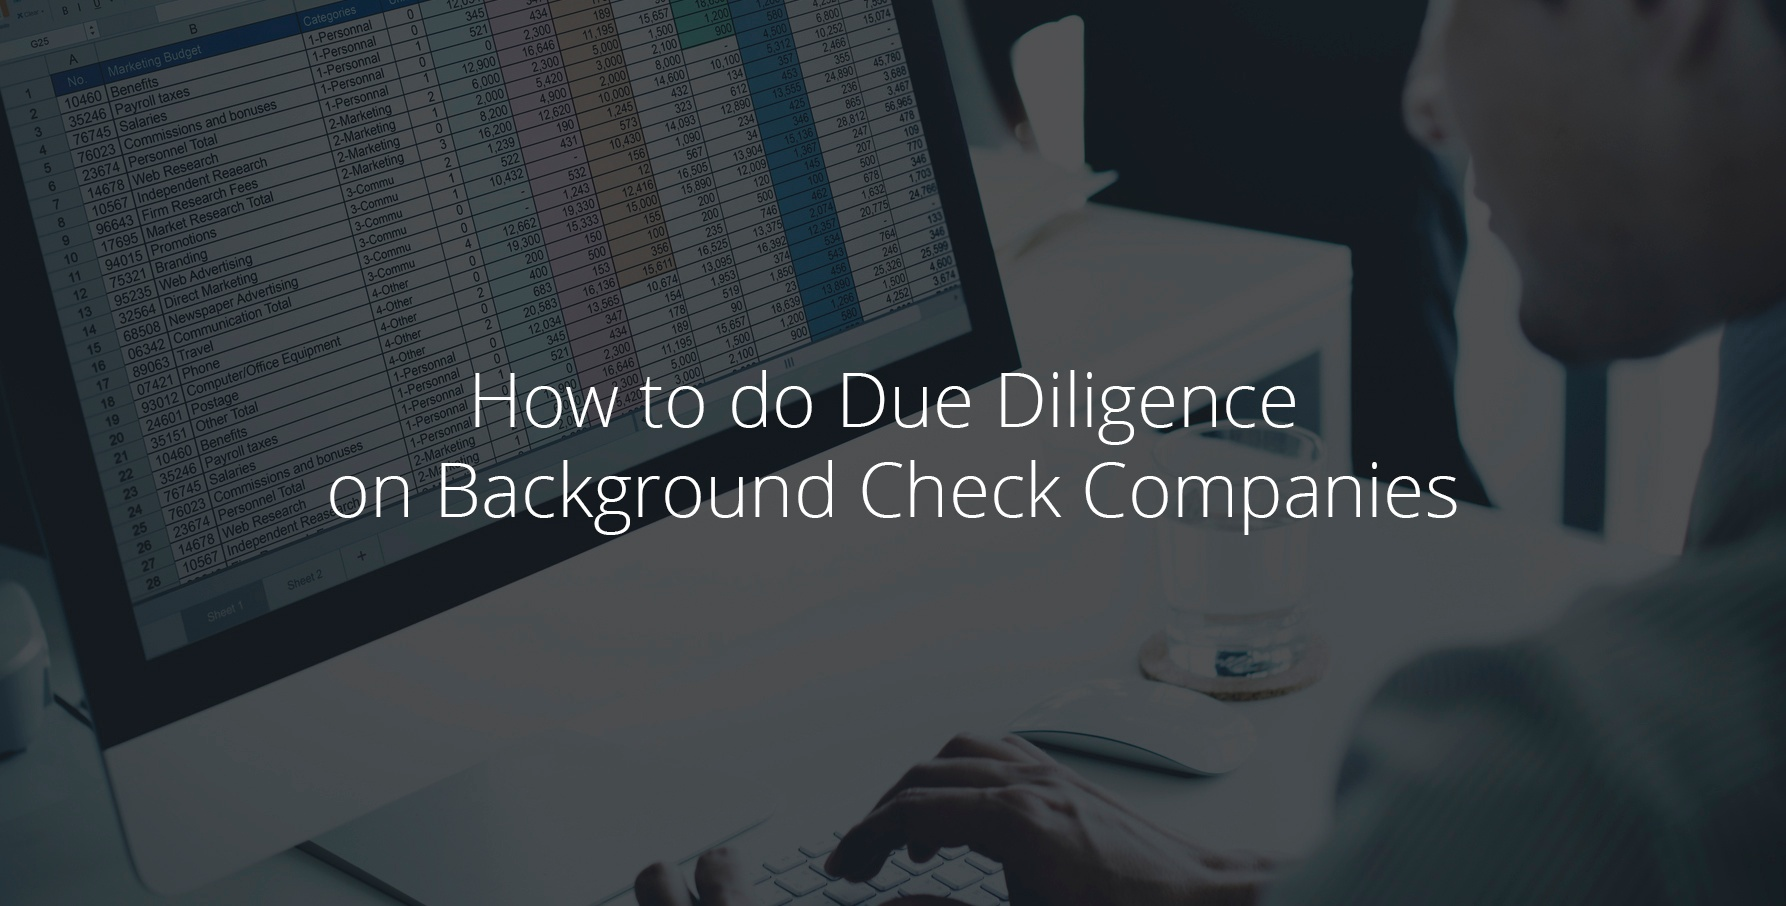 How to do Due Diligence on Background Check Companies Here are some factors to consider when hiring a background check company